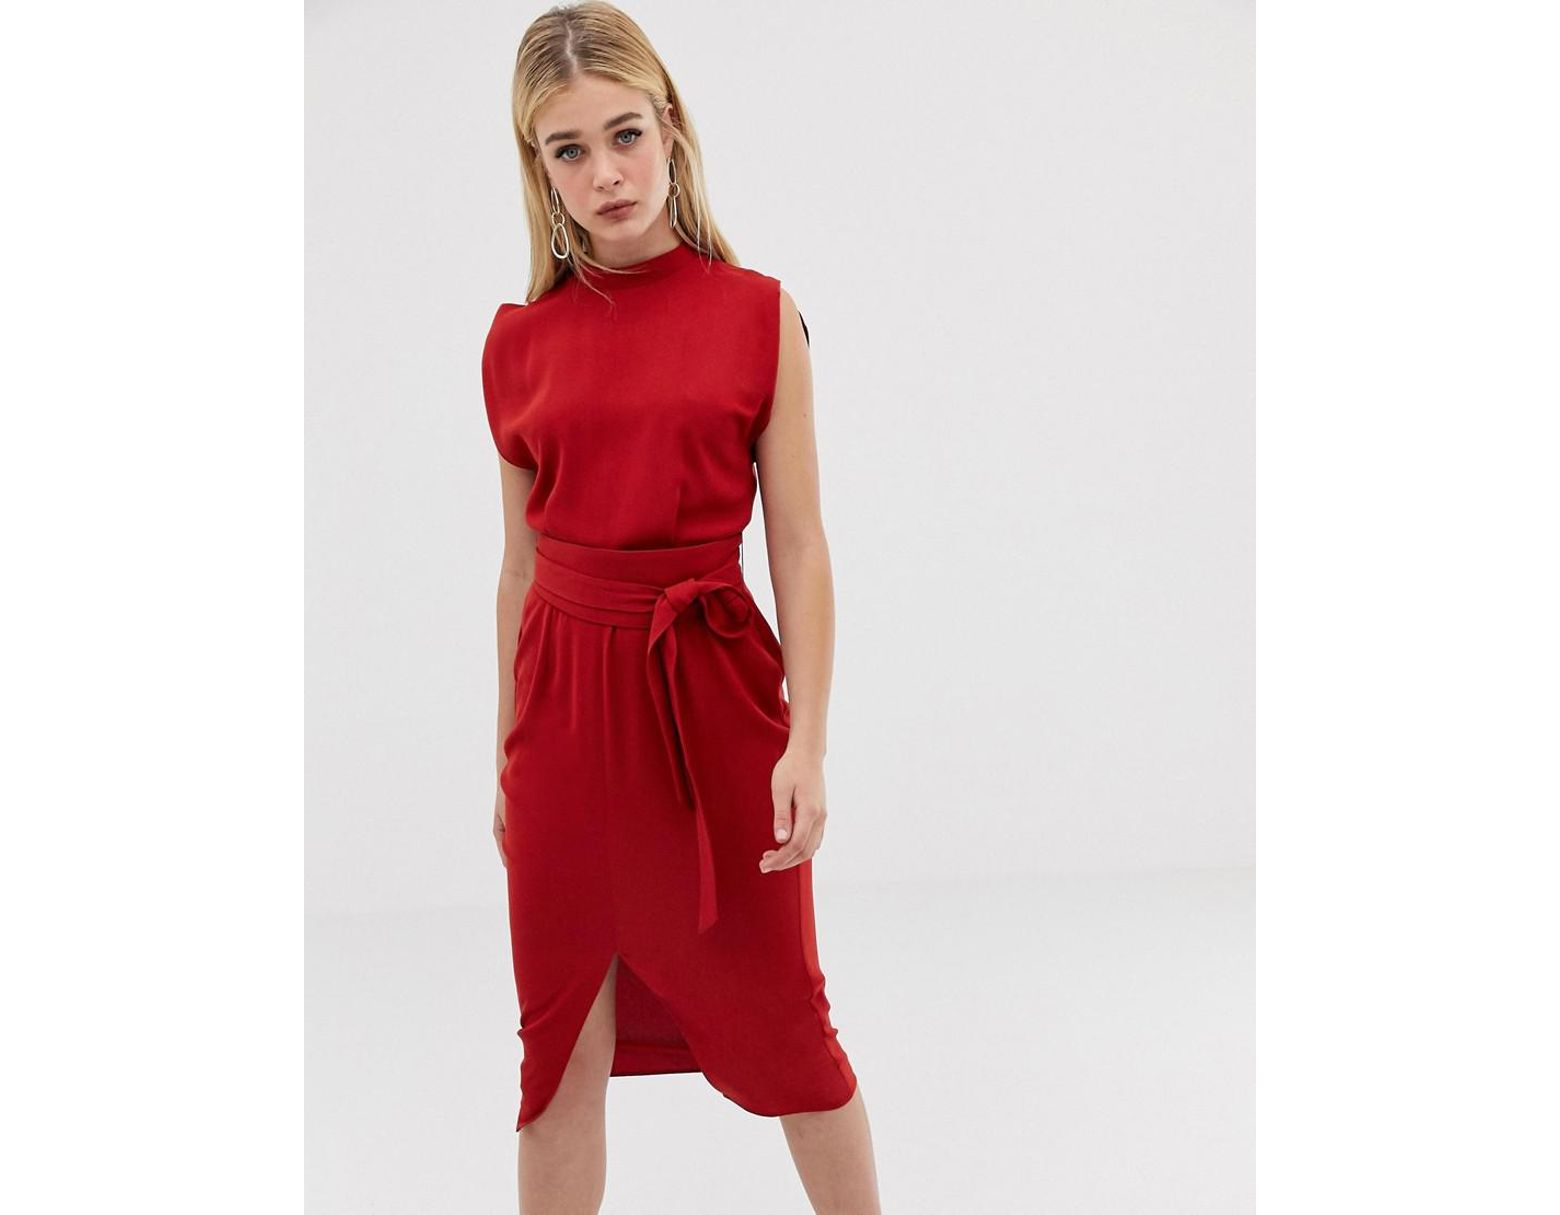 8d06965441 ASOS Split Sleeve Midi Dress With Obi Belt in Red - Lyst